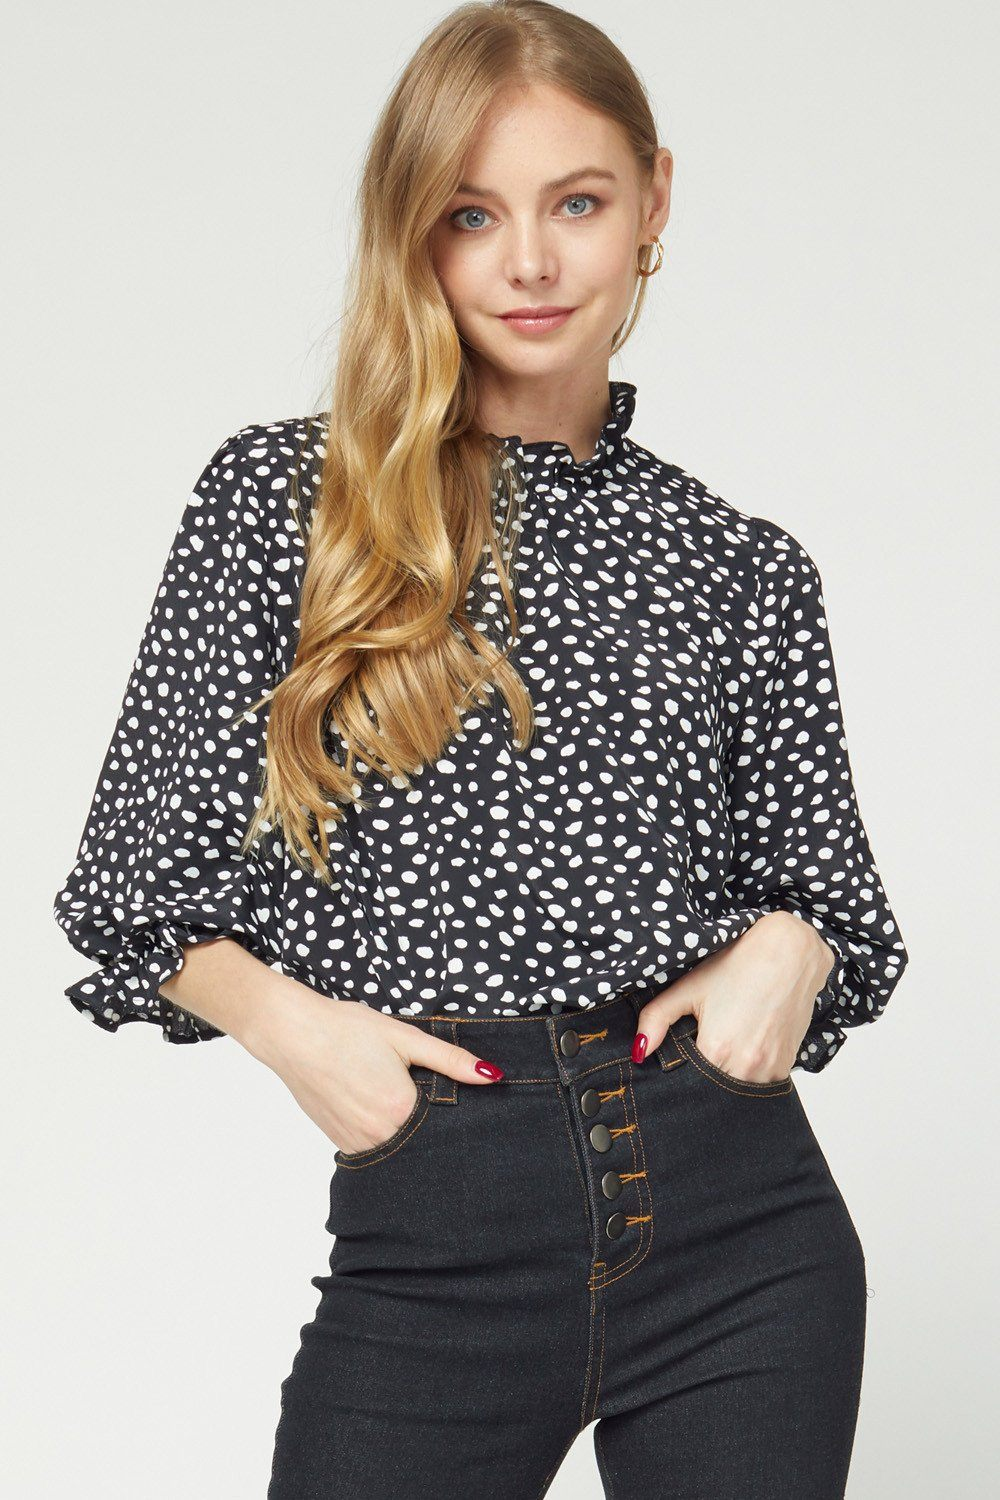 Better Together Black Spotted Top - Caroline Hill